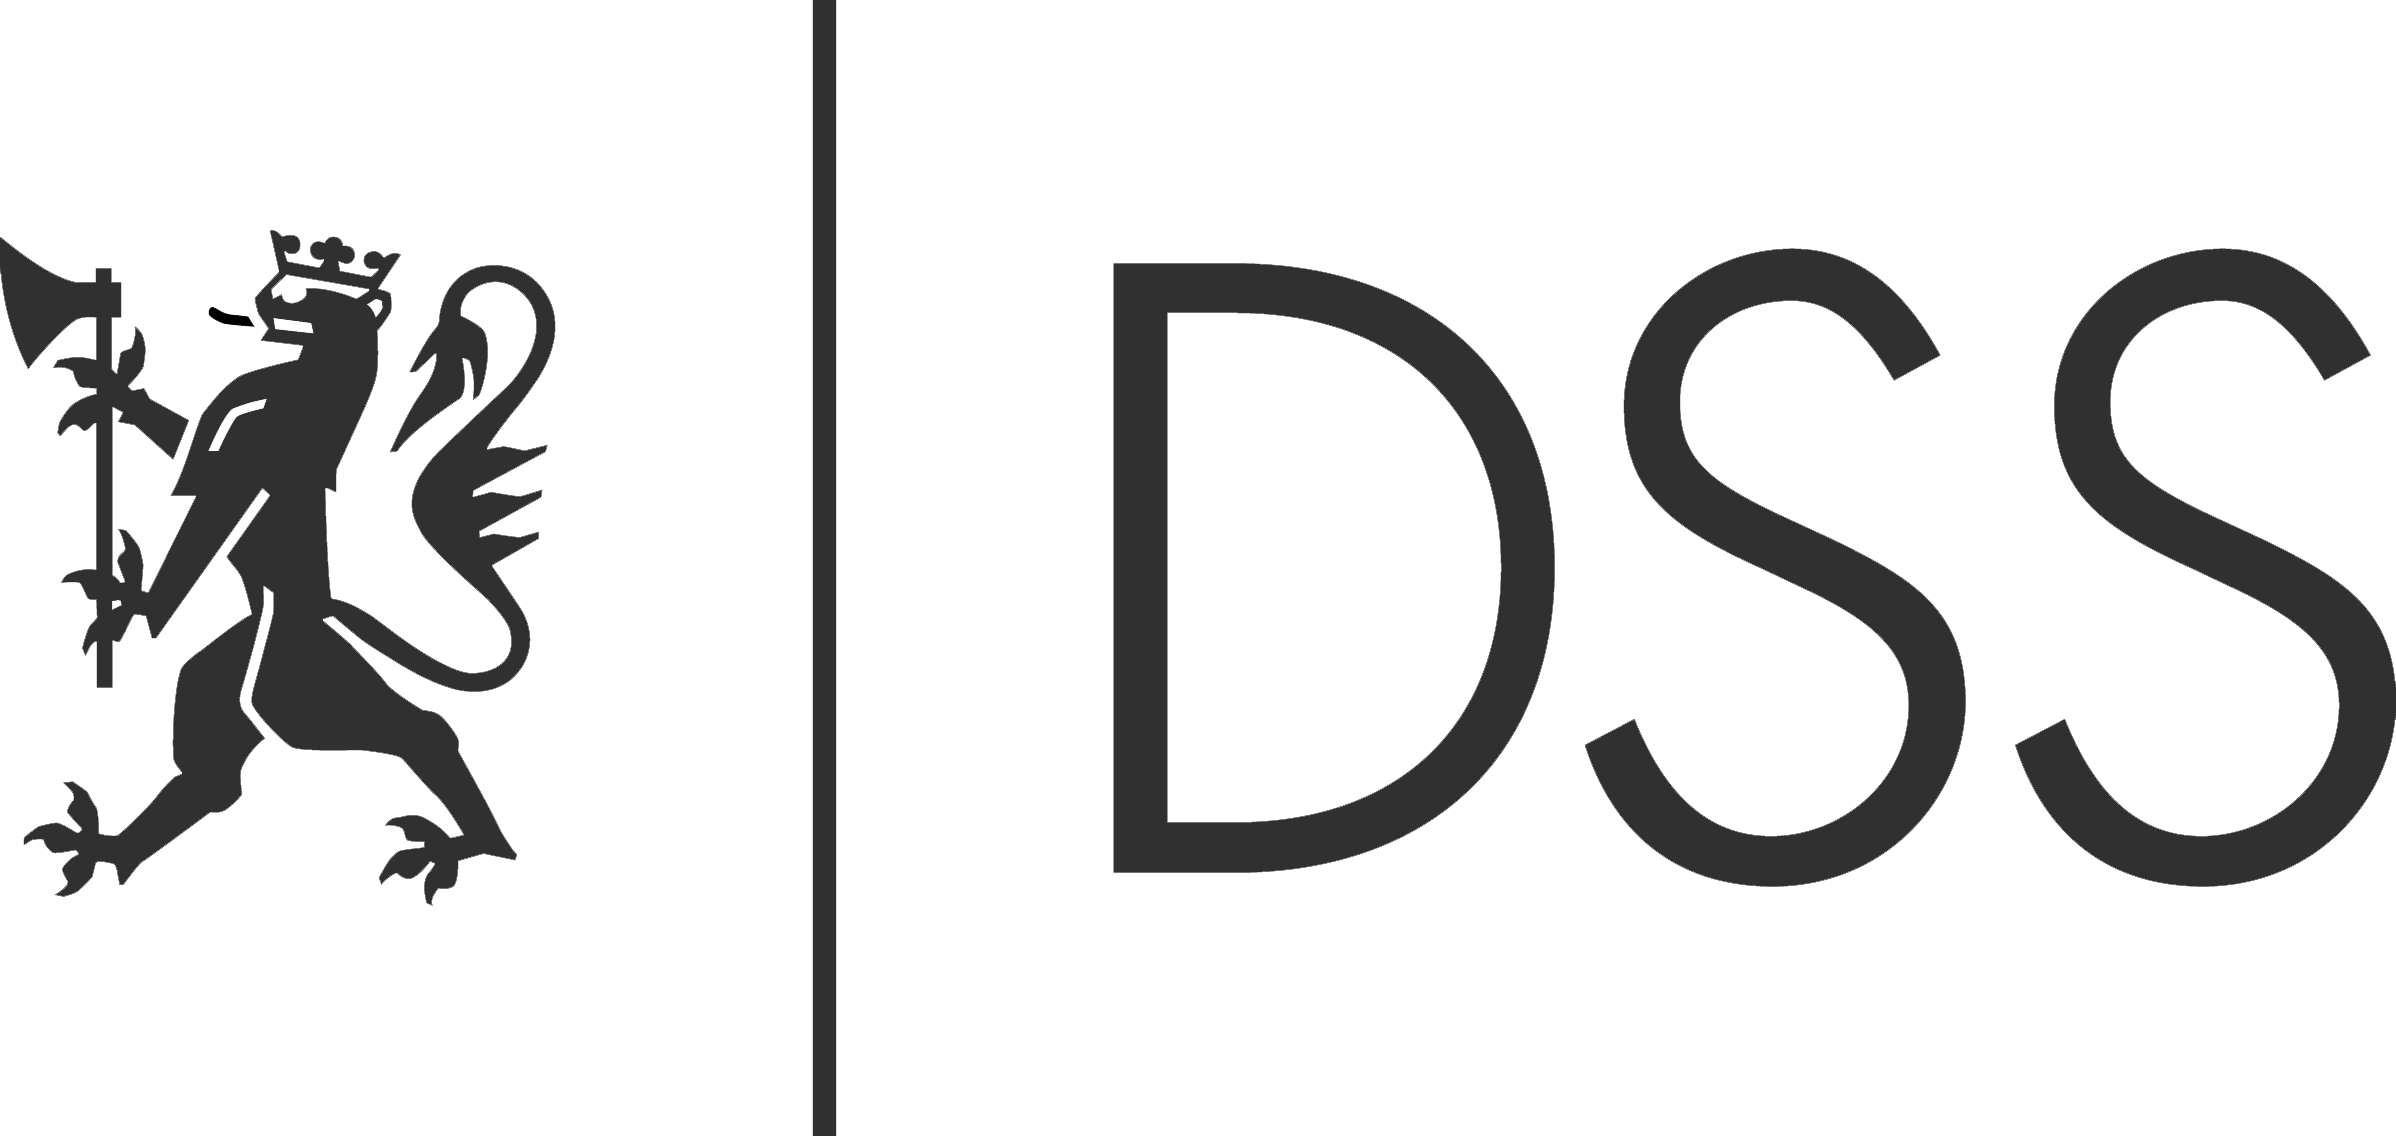 The logo of DSS in a dark color